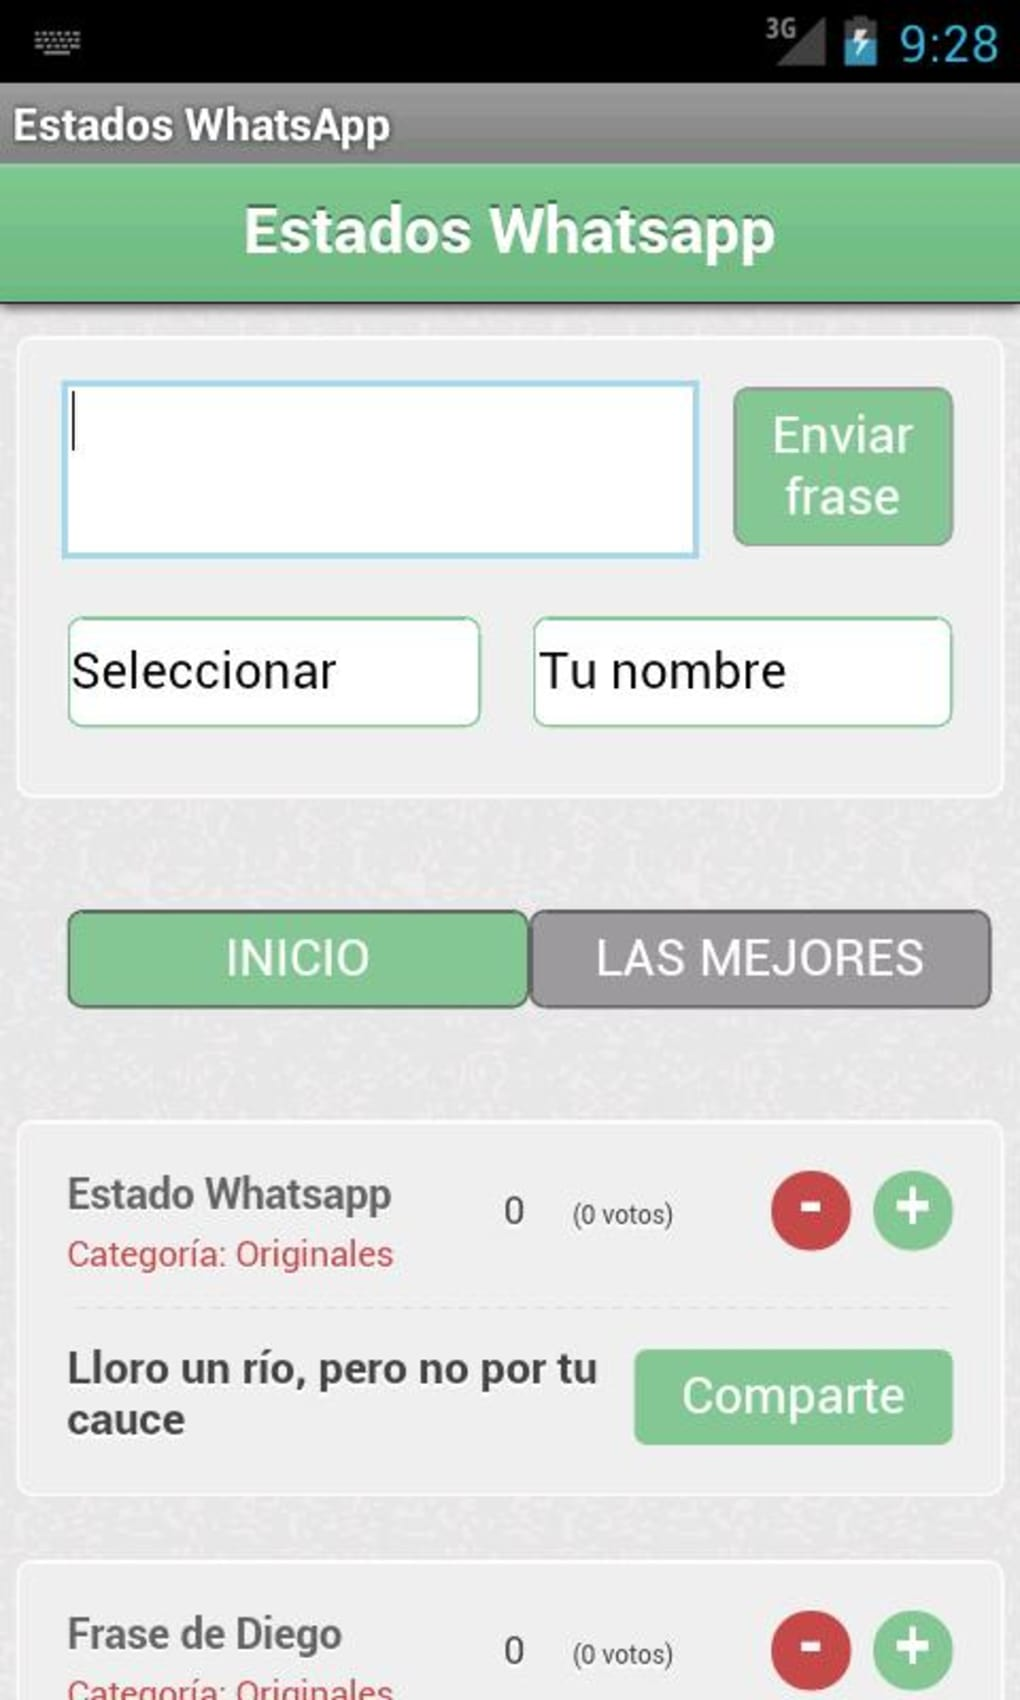 Frases Y Estados Whatsapp Para Android Descargar